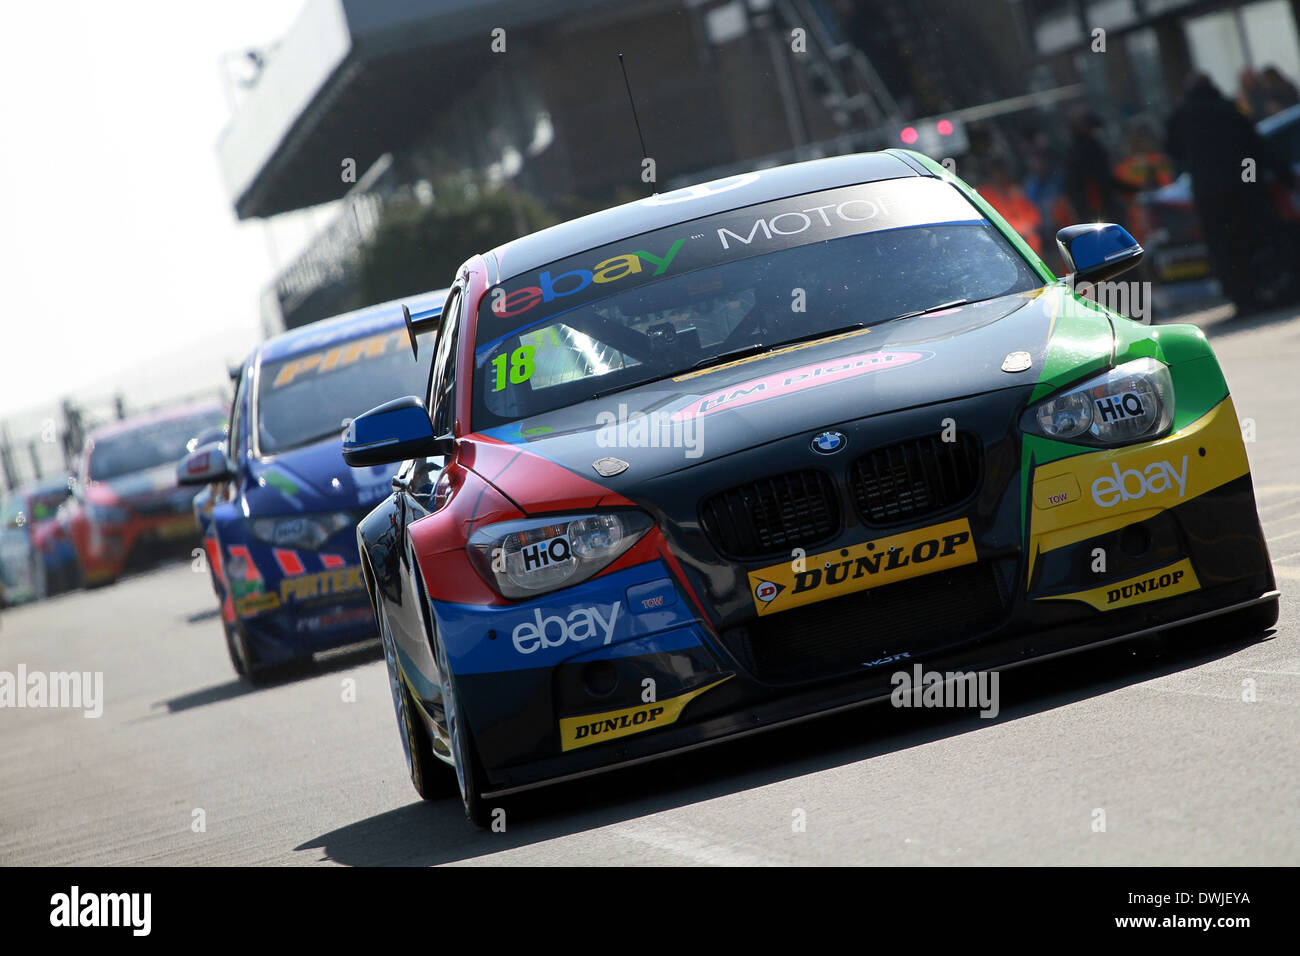 Ebay Motors Stock Photos & Ebay Motors Stock Images - Alamy